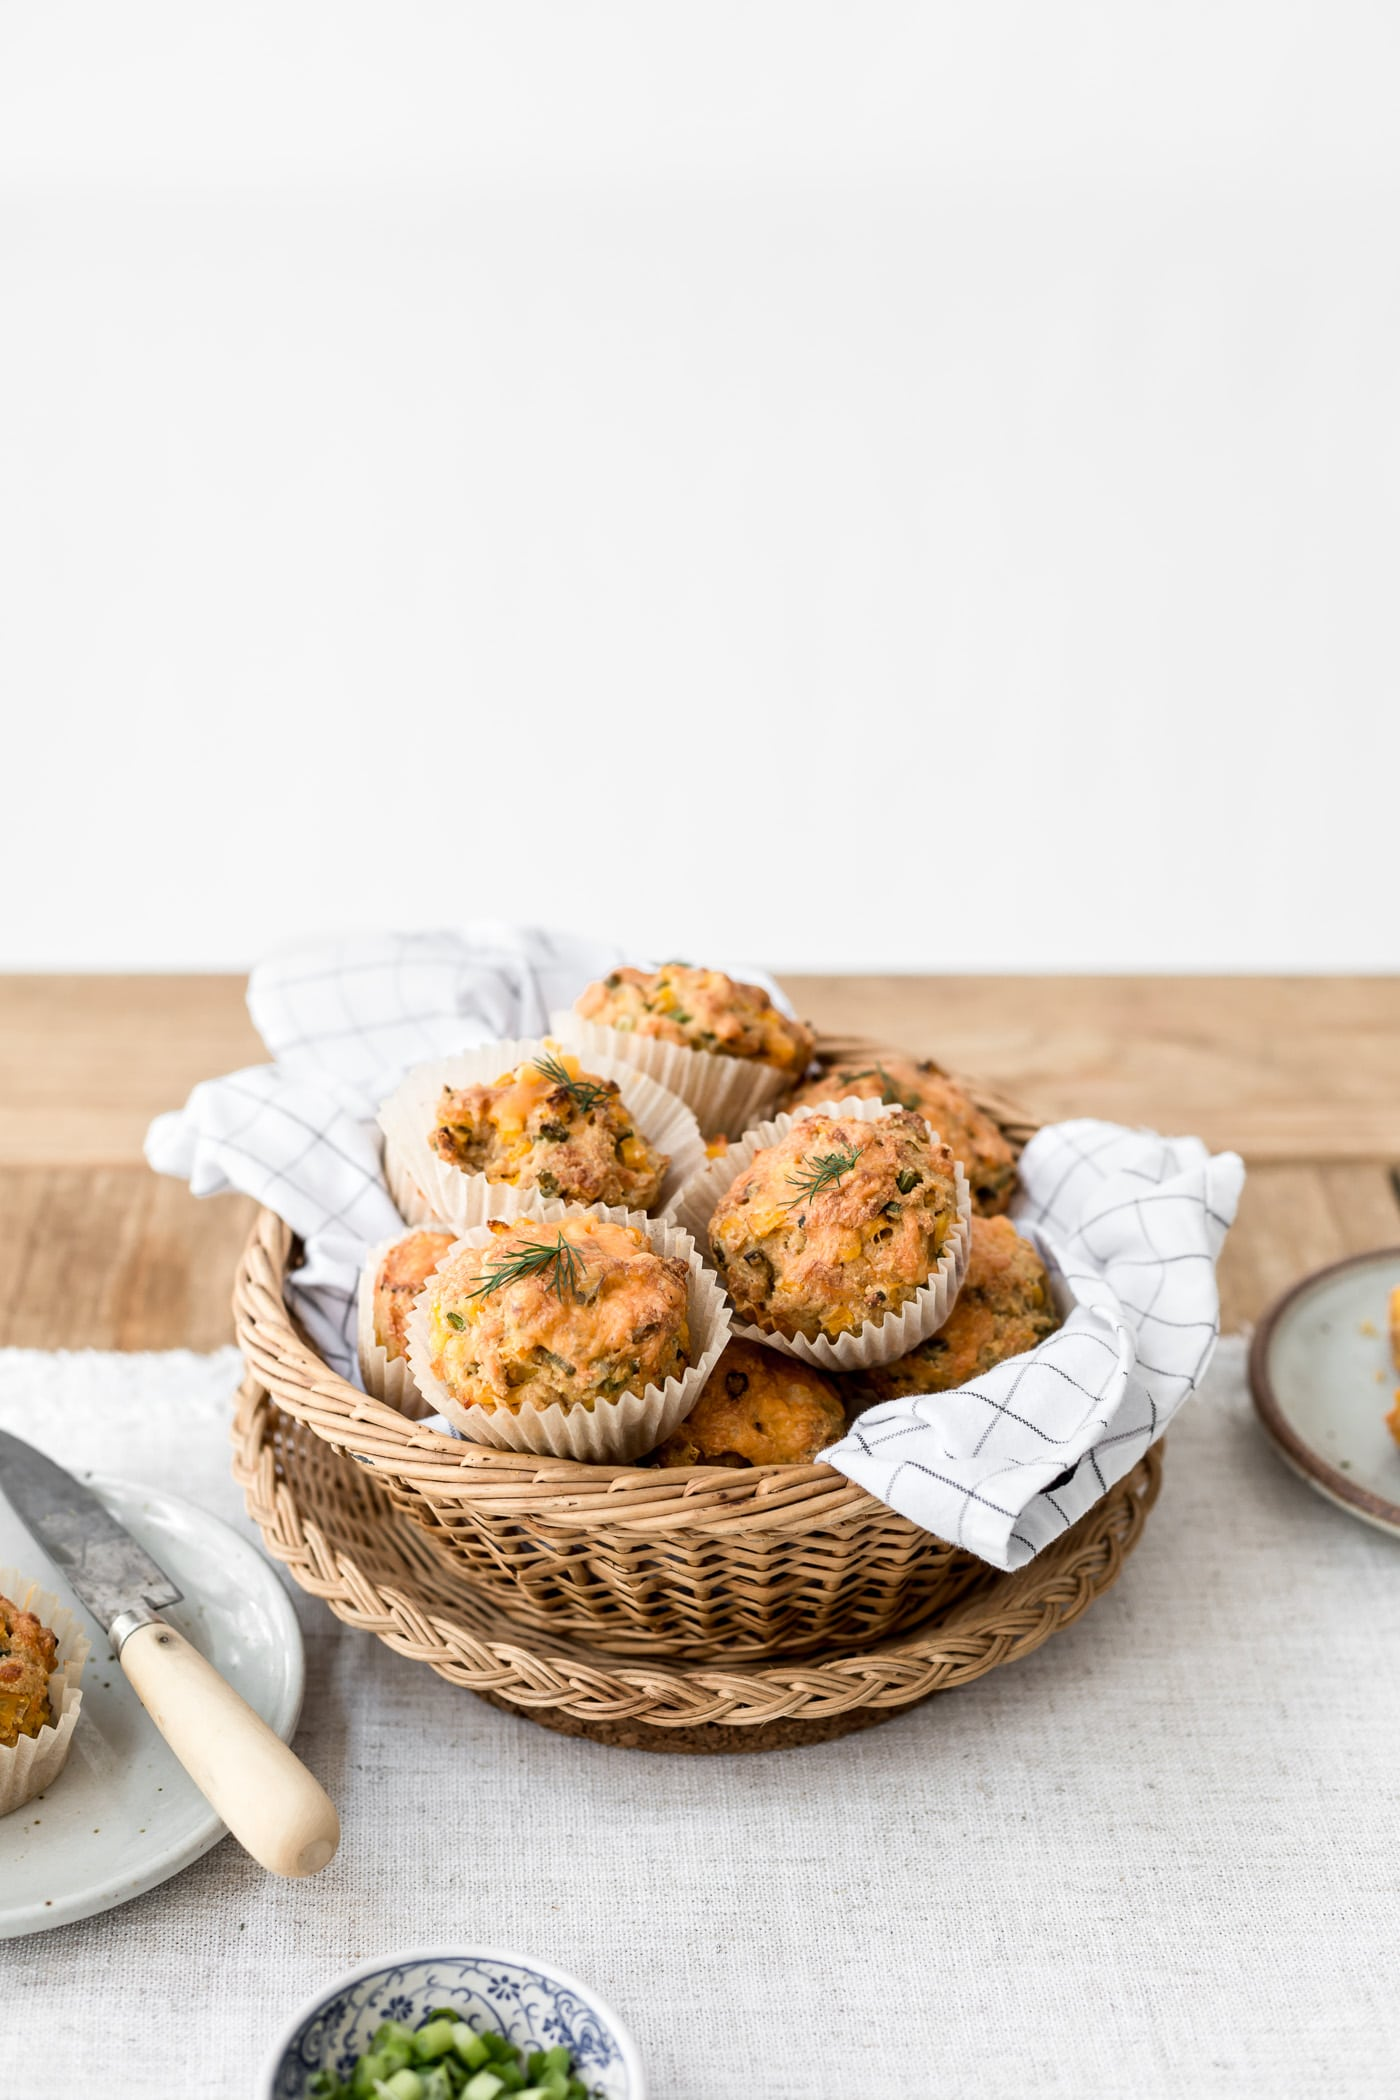 A basket full of freshly baked cornbread muffins are photographed from the front view.